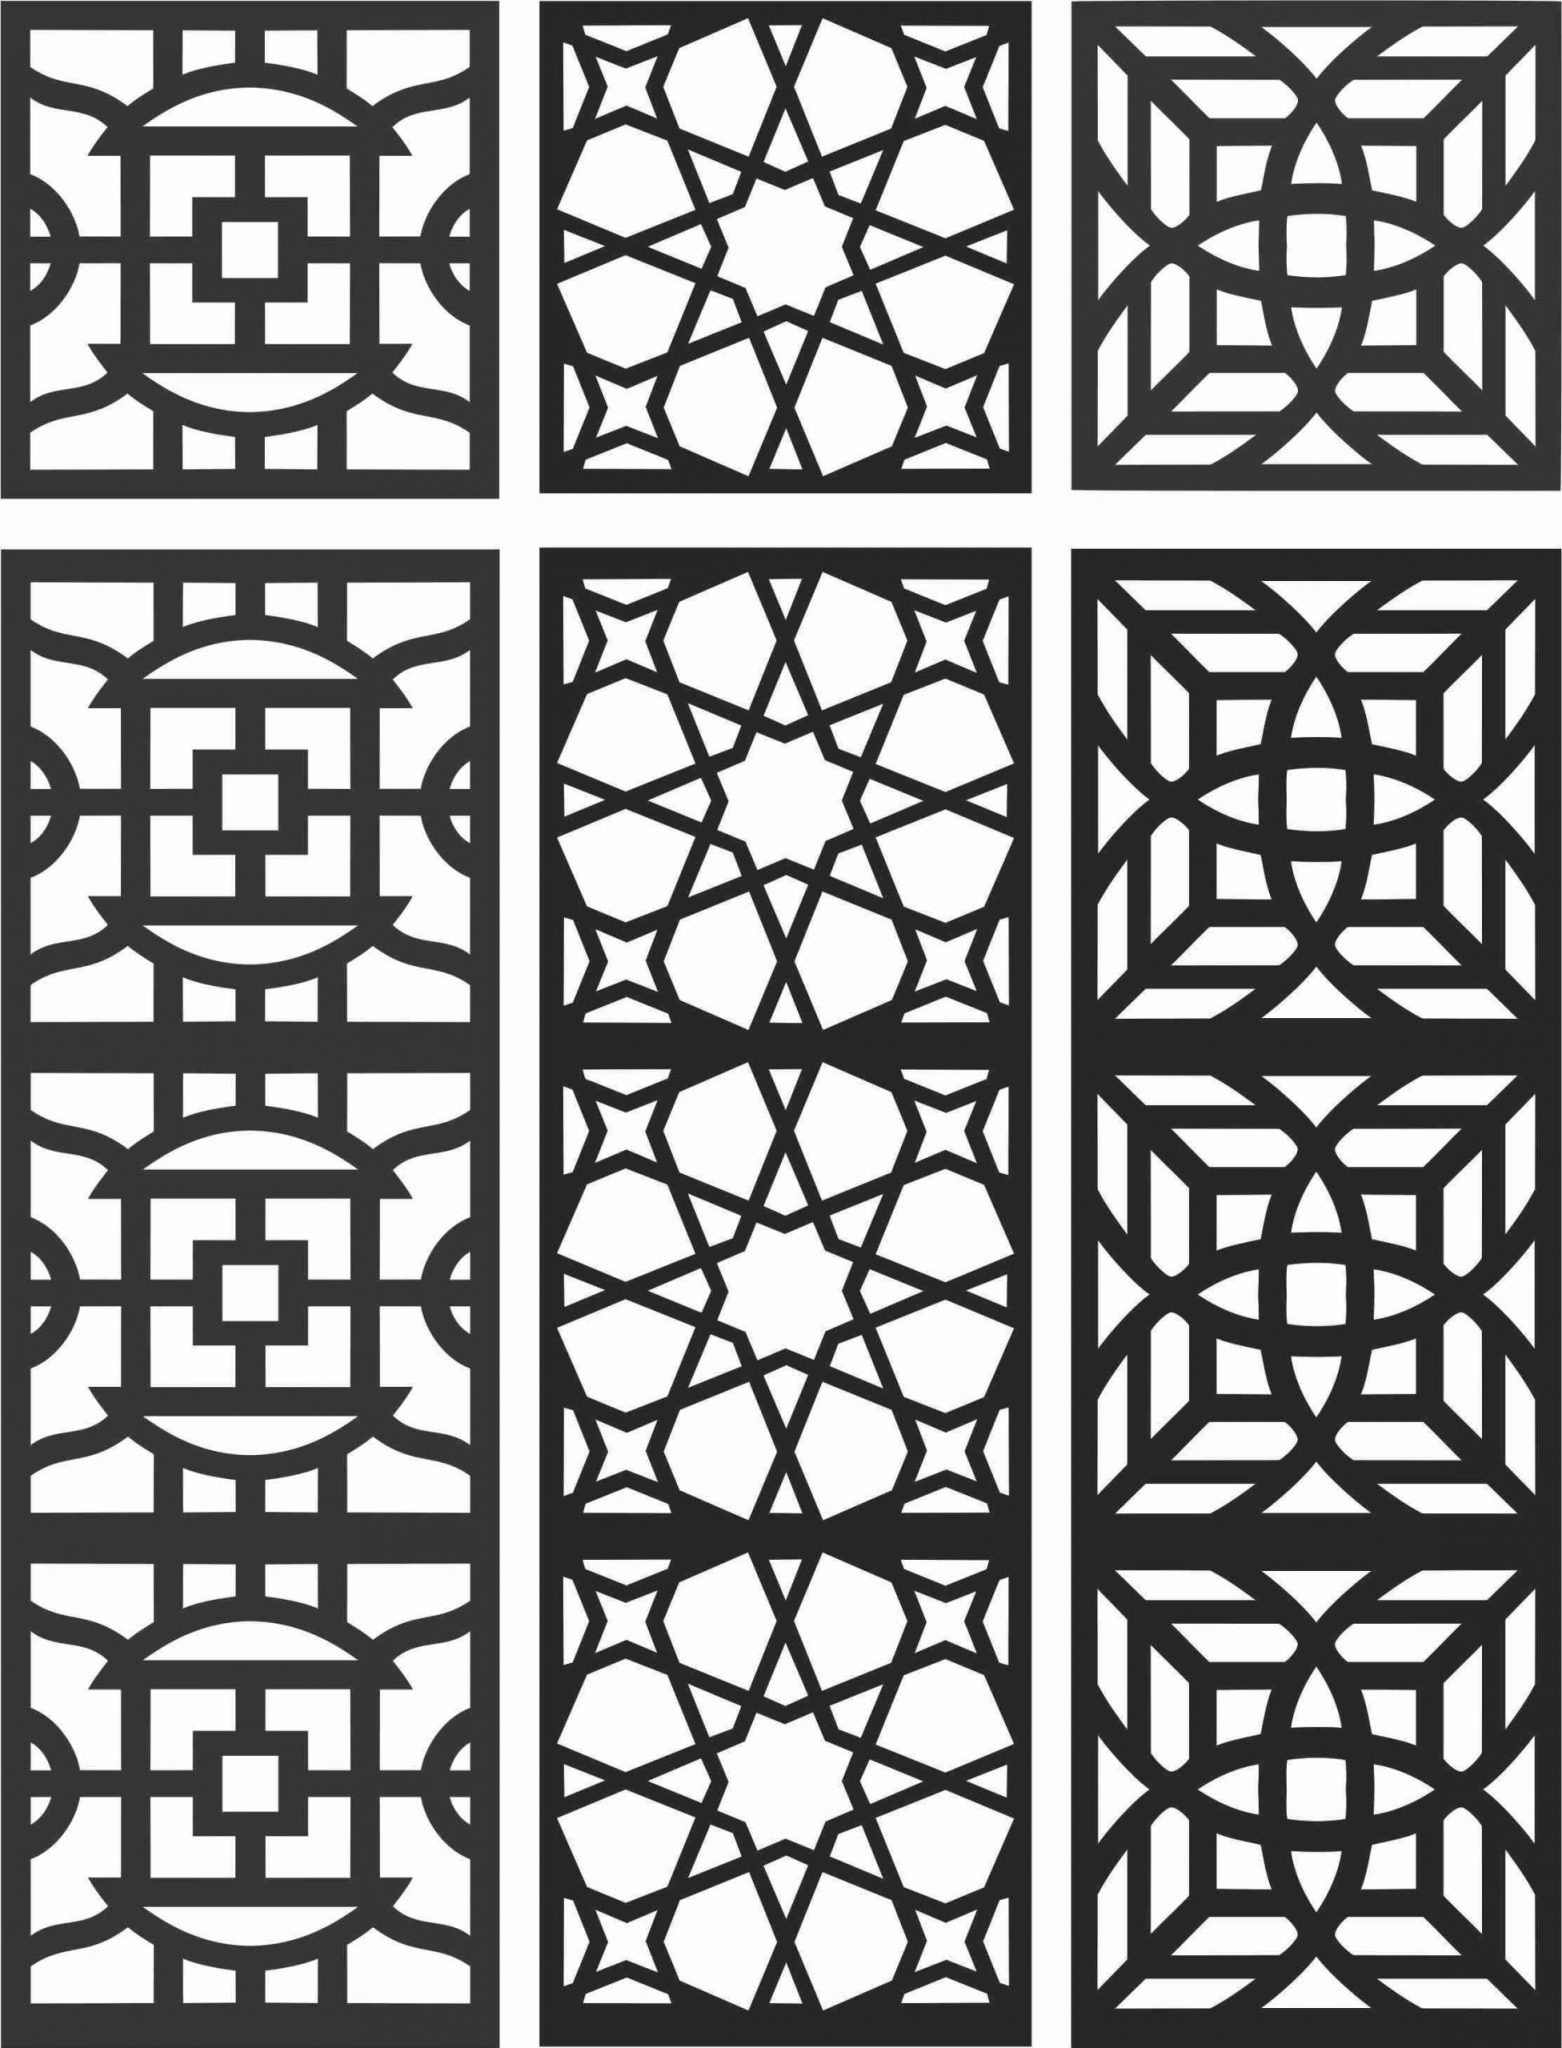 Floral Screen Patterns Design 100 Free DXF File